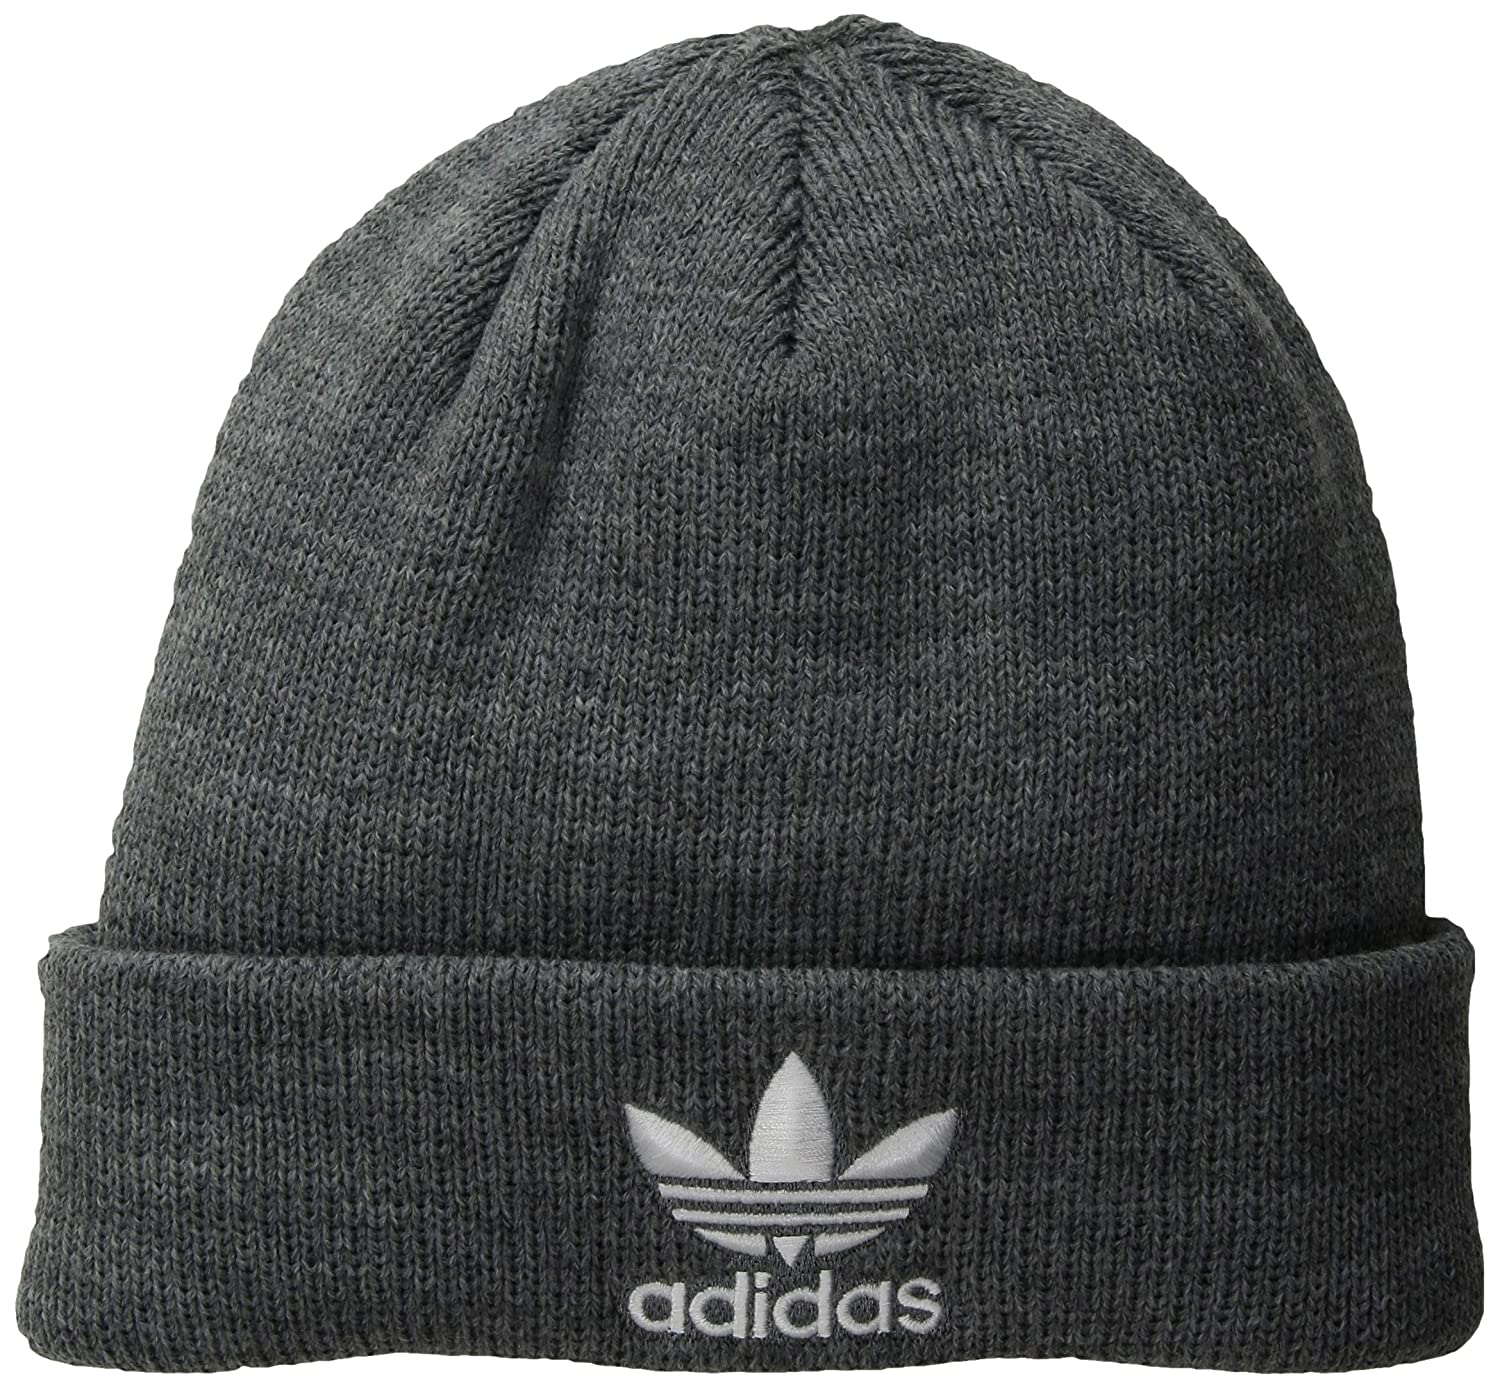 a468d31829d26 Amazon.com  adidas Men s Originals Trefoil Beanie